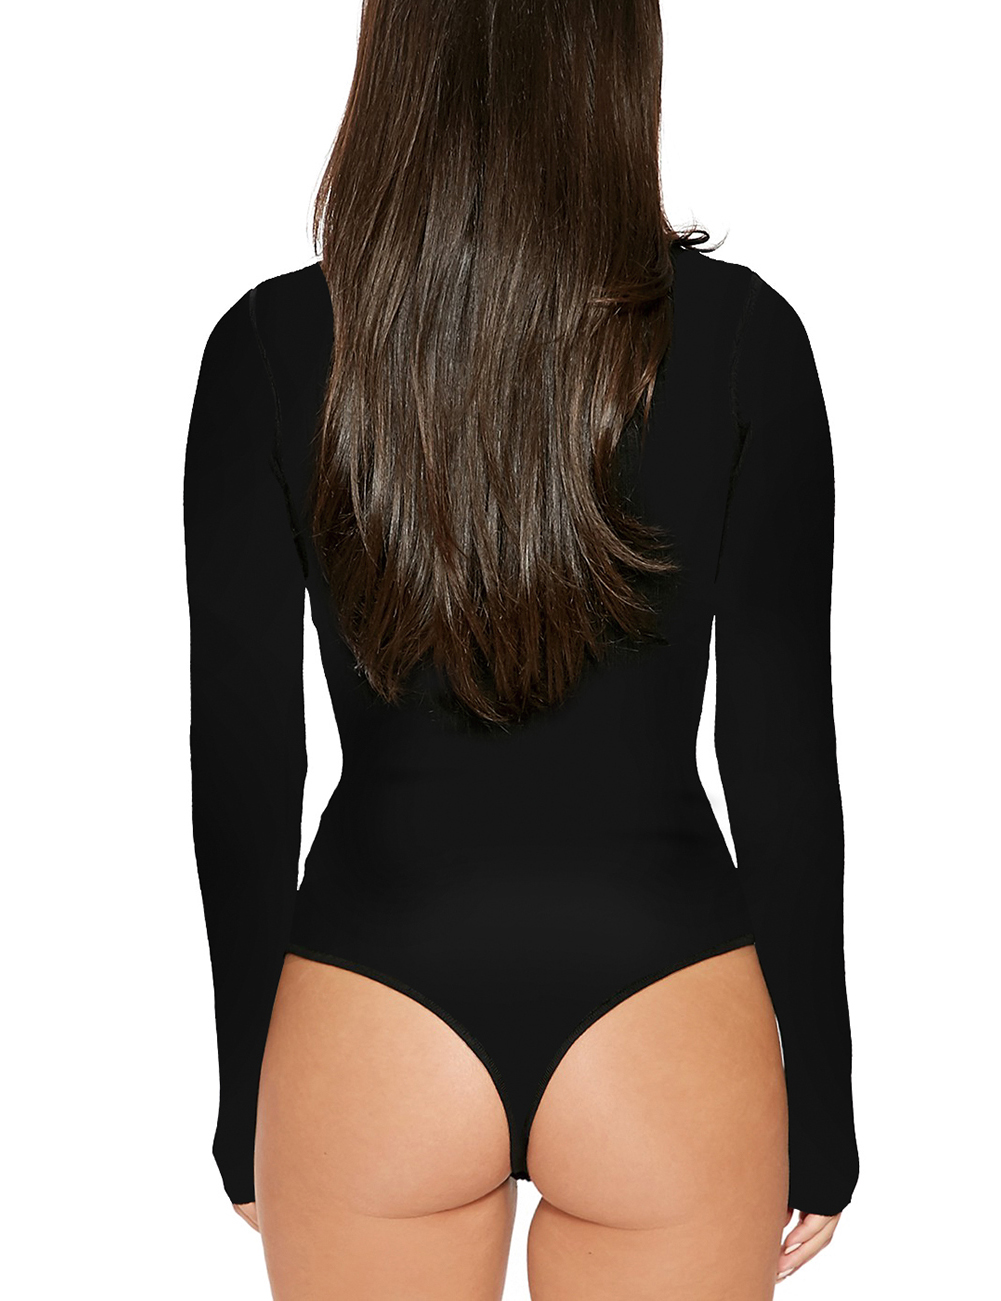 //cdn.affectcloud.com/hexinfashion/upload/imgs/Women_Clothing/Bodysuit/G180195-BK1/G180195-BK1-201911055dc121749b772.jpg